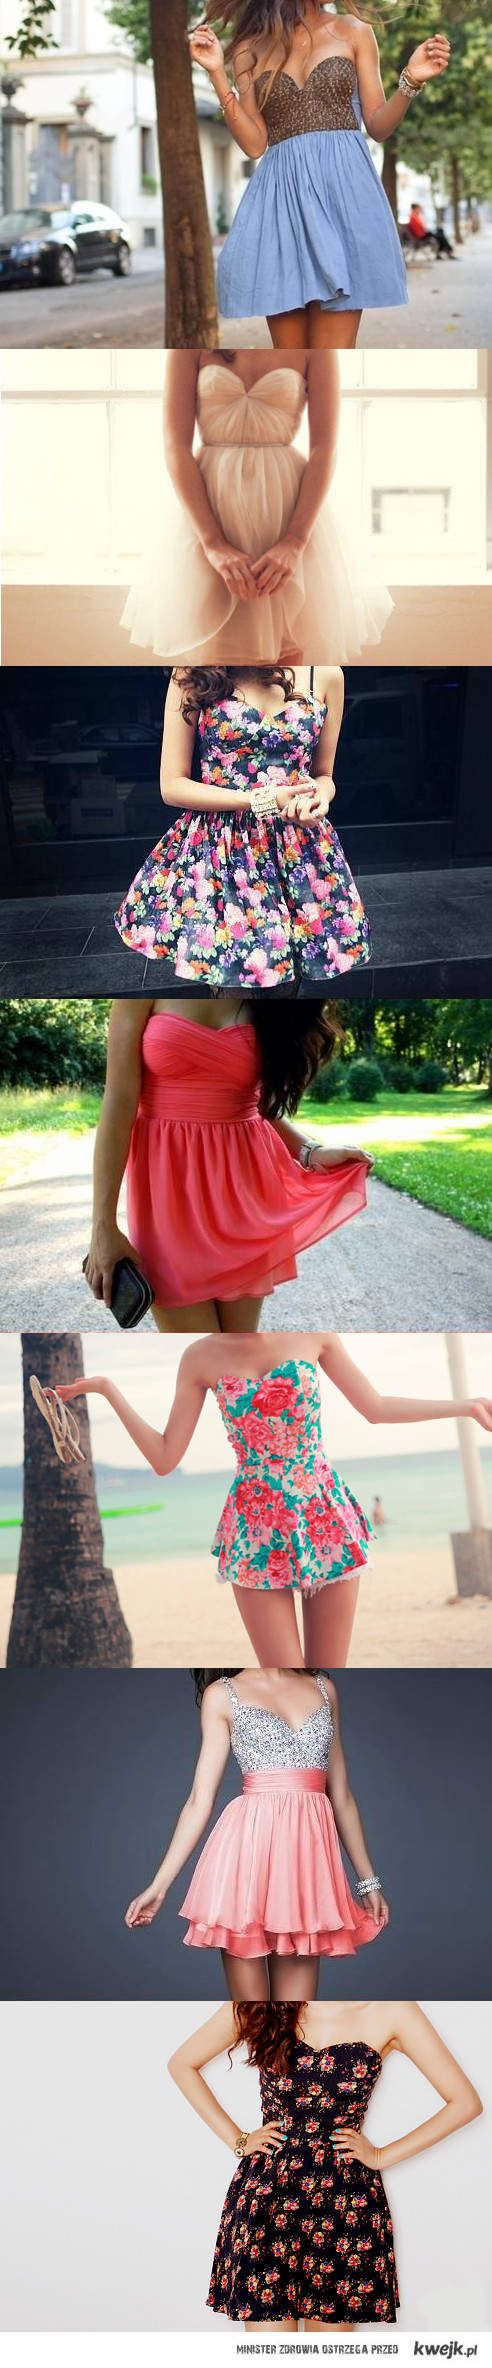 These are all so cute. ♥